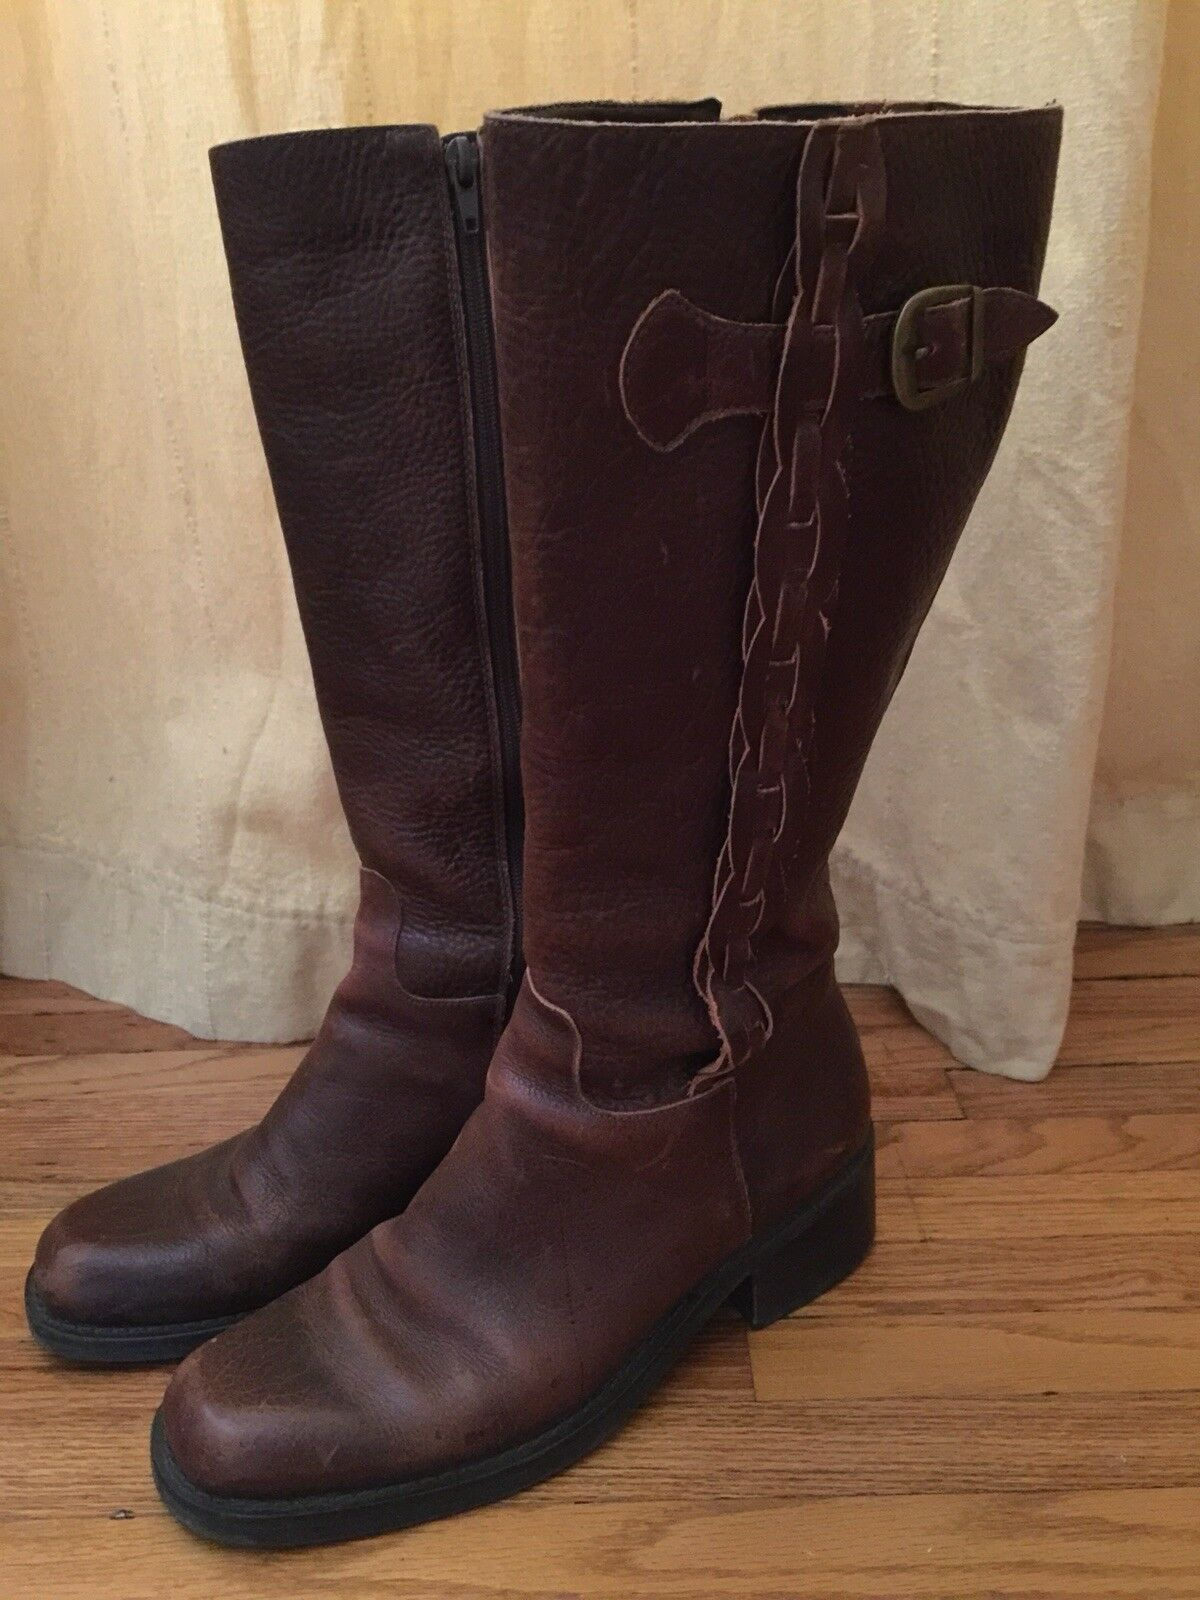 Nicole Brown Leather Distressed Mid Calf Braided Boots US Size 8